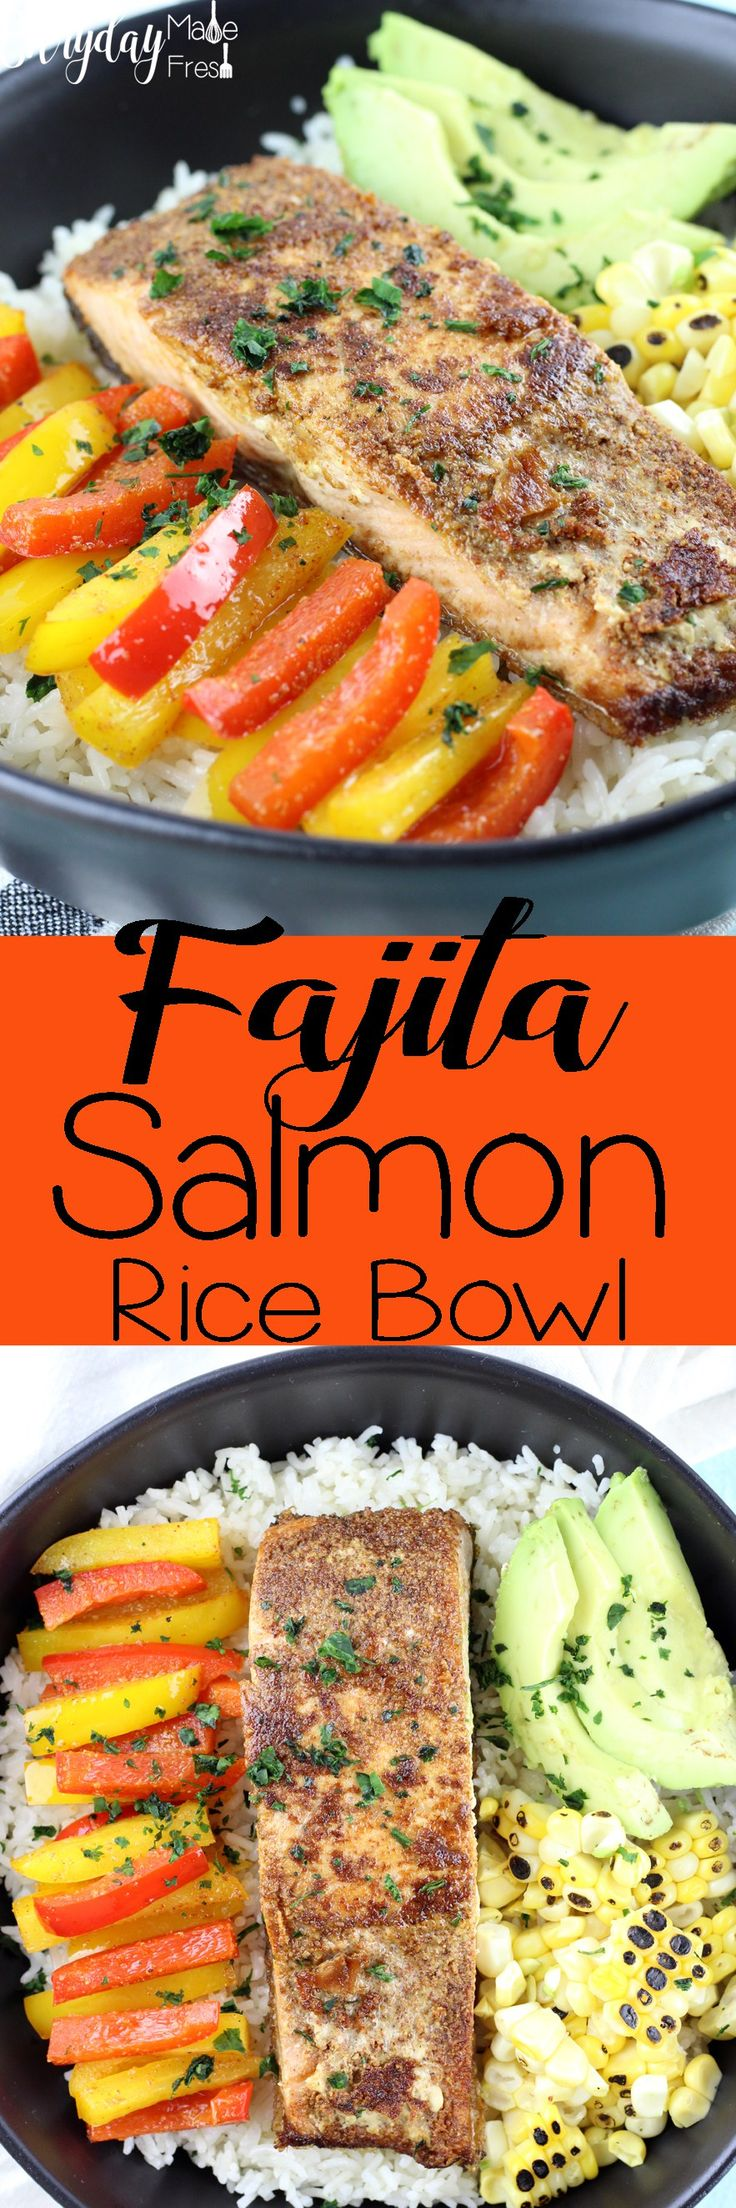 779 best Delicious Seafood Recipes images on Pinterest | Seafood recipes, Seafood rice recipe ...